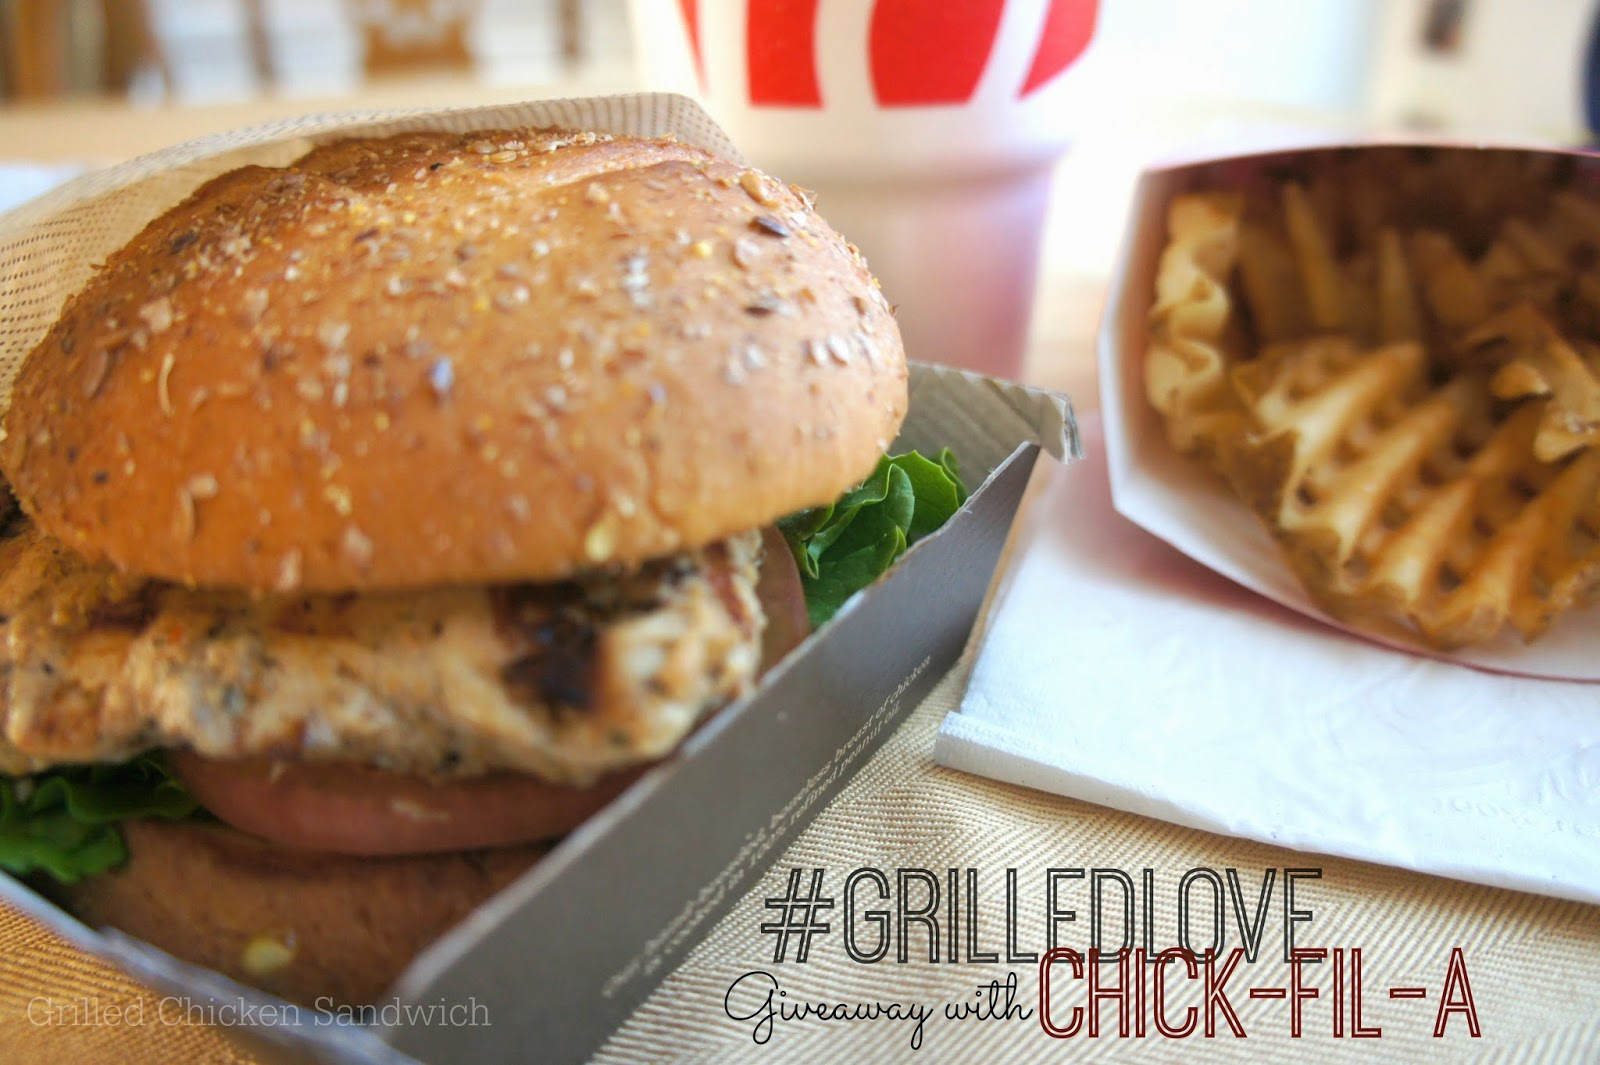 #GrilledLove giveaway with Chick-Fil-A